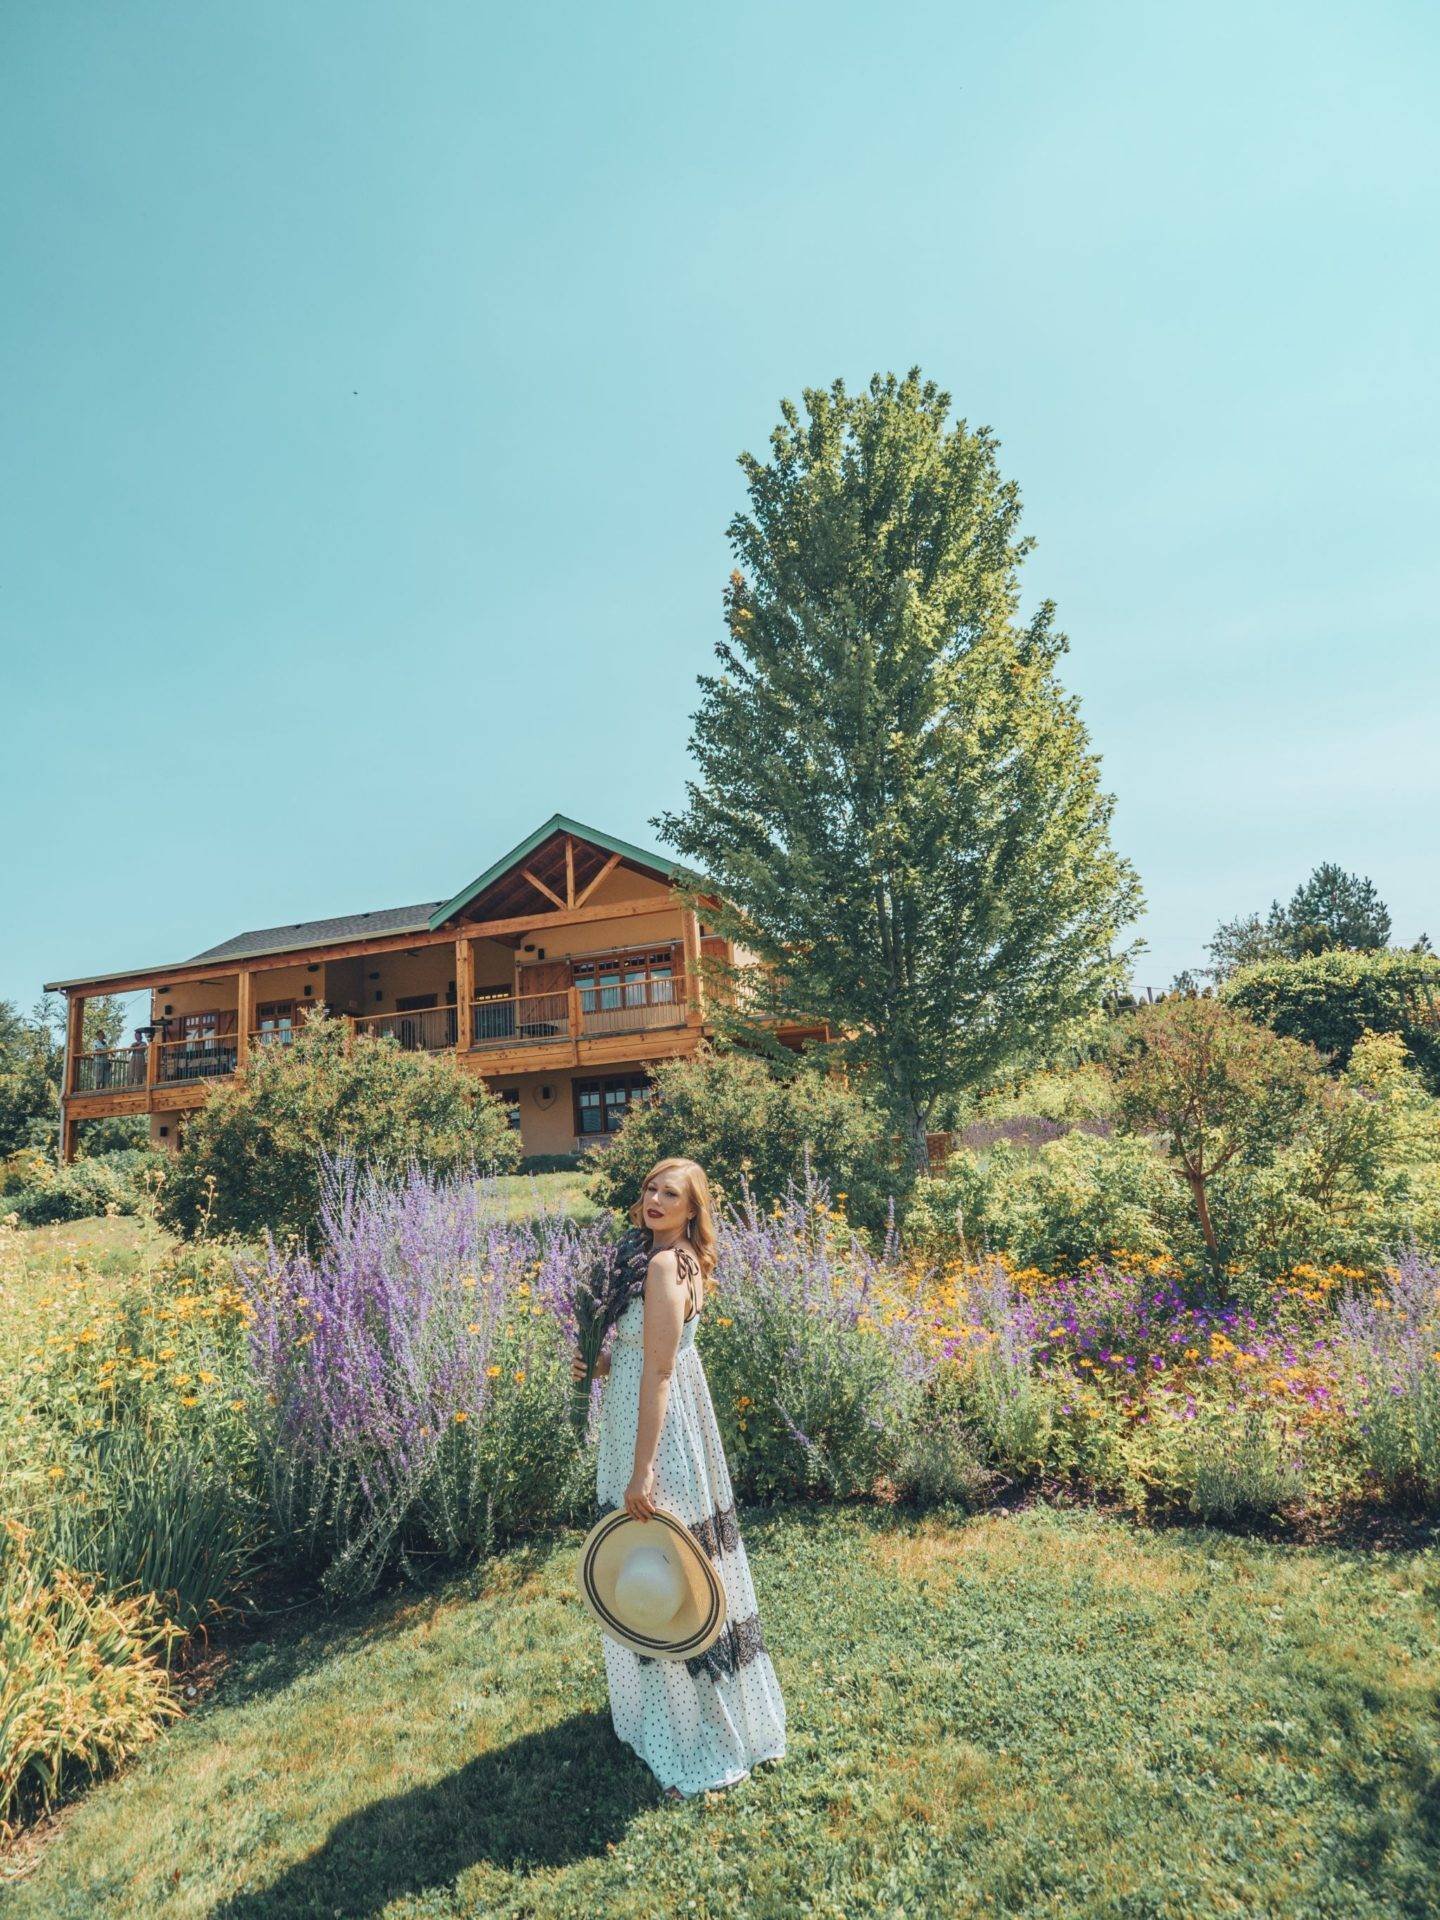 Looking for the most beautiful Instagrammable places in Kelowna? Check out this guide to find the best photography spots in Kelowna! Pictured here: The Okanagan Lavender and Herb Farm